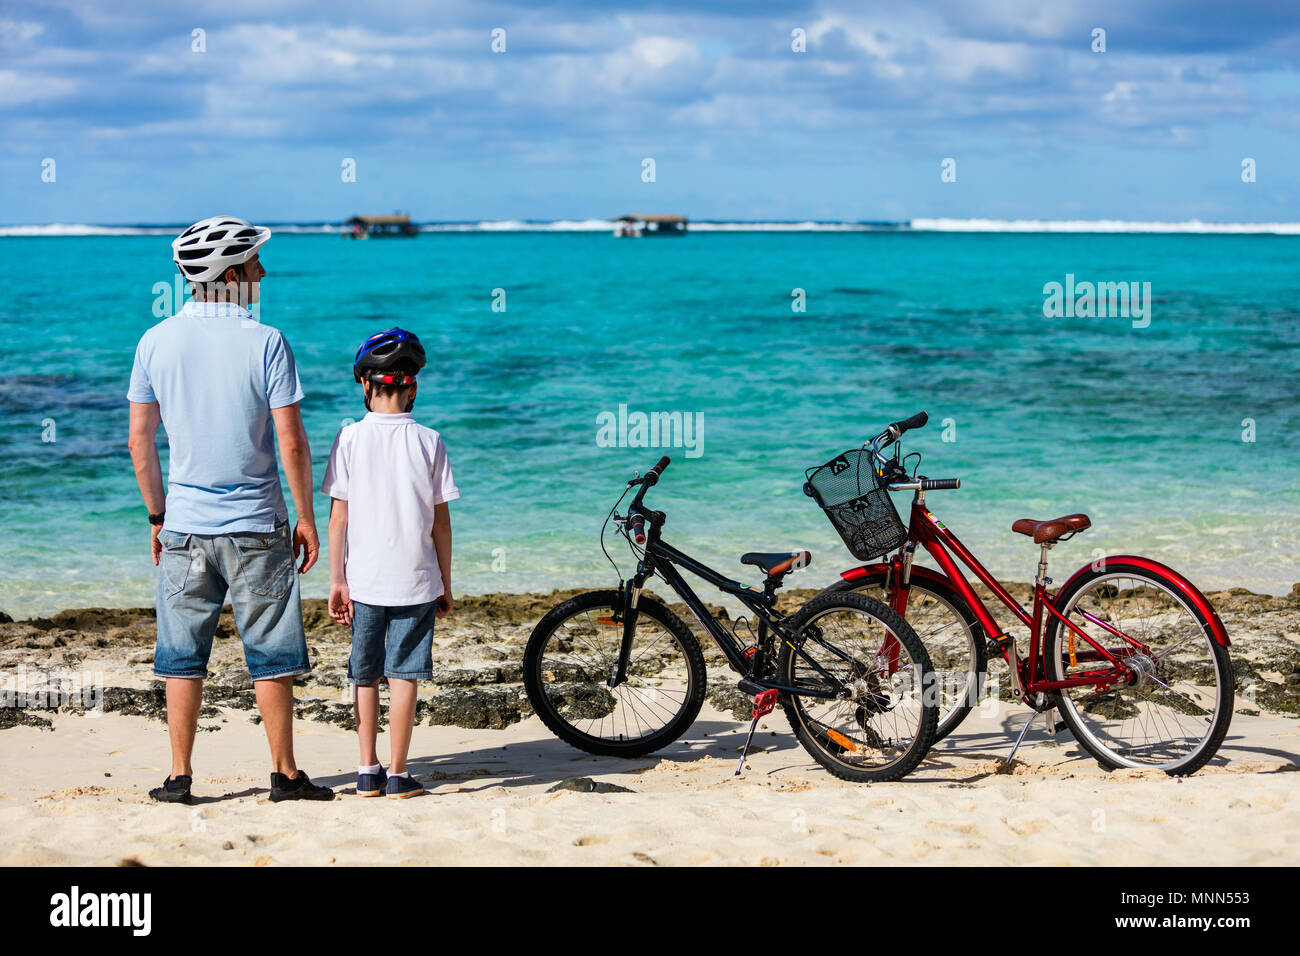 Father and kids enjoying sea view at tropical beach with their bikes parked nearby - Stock Image